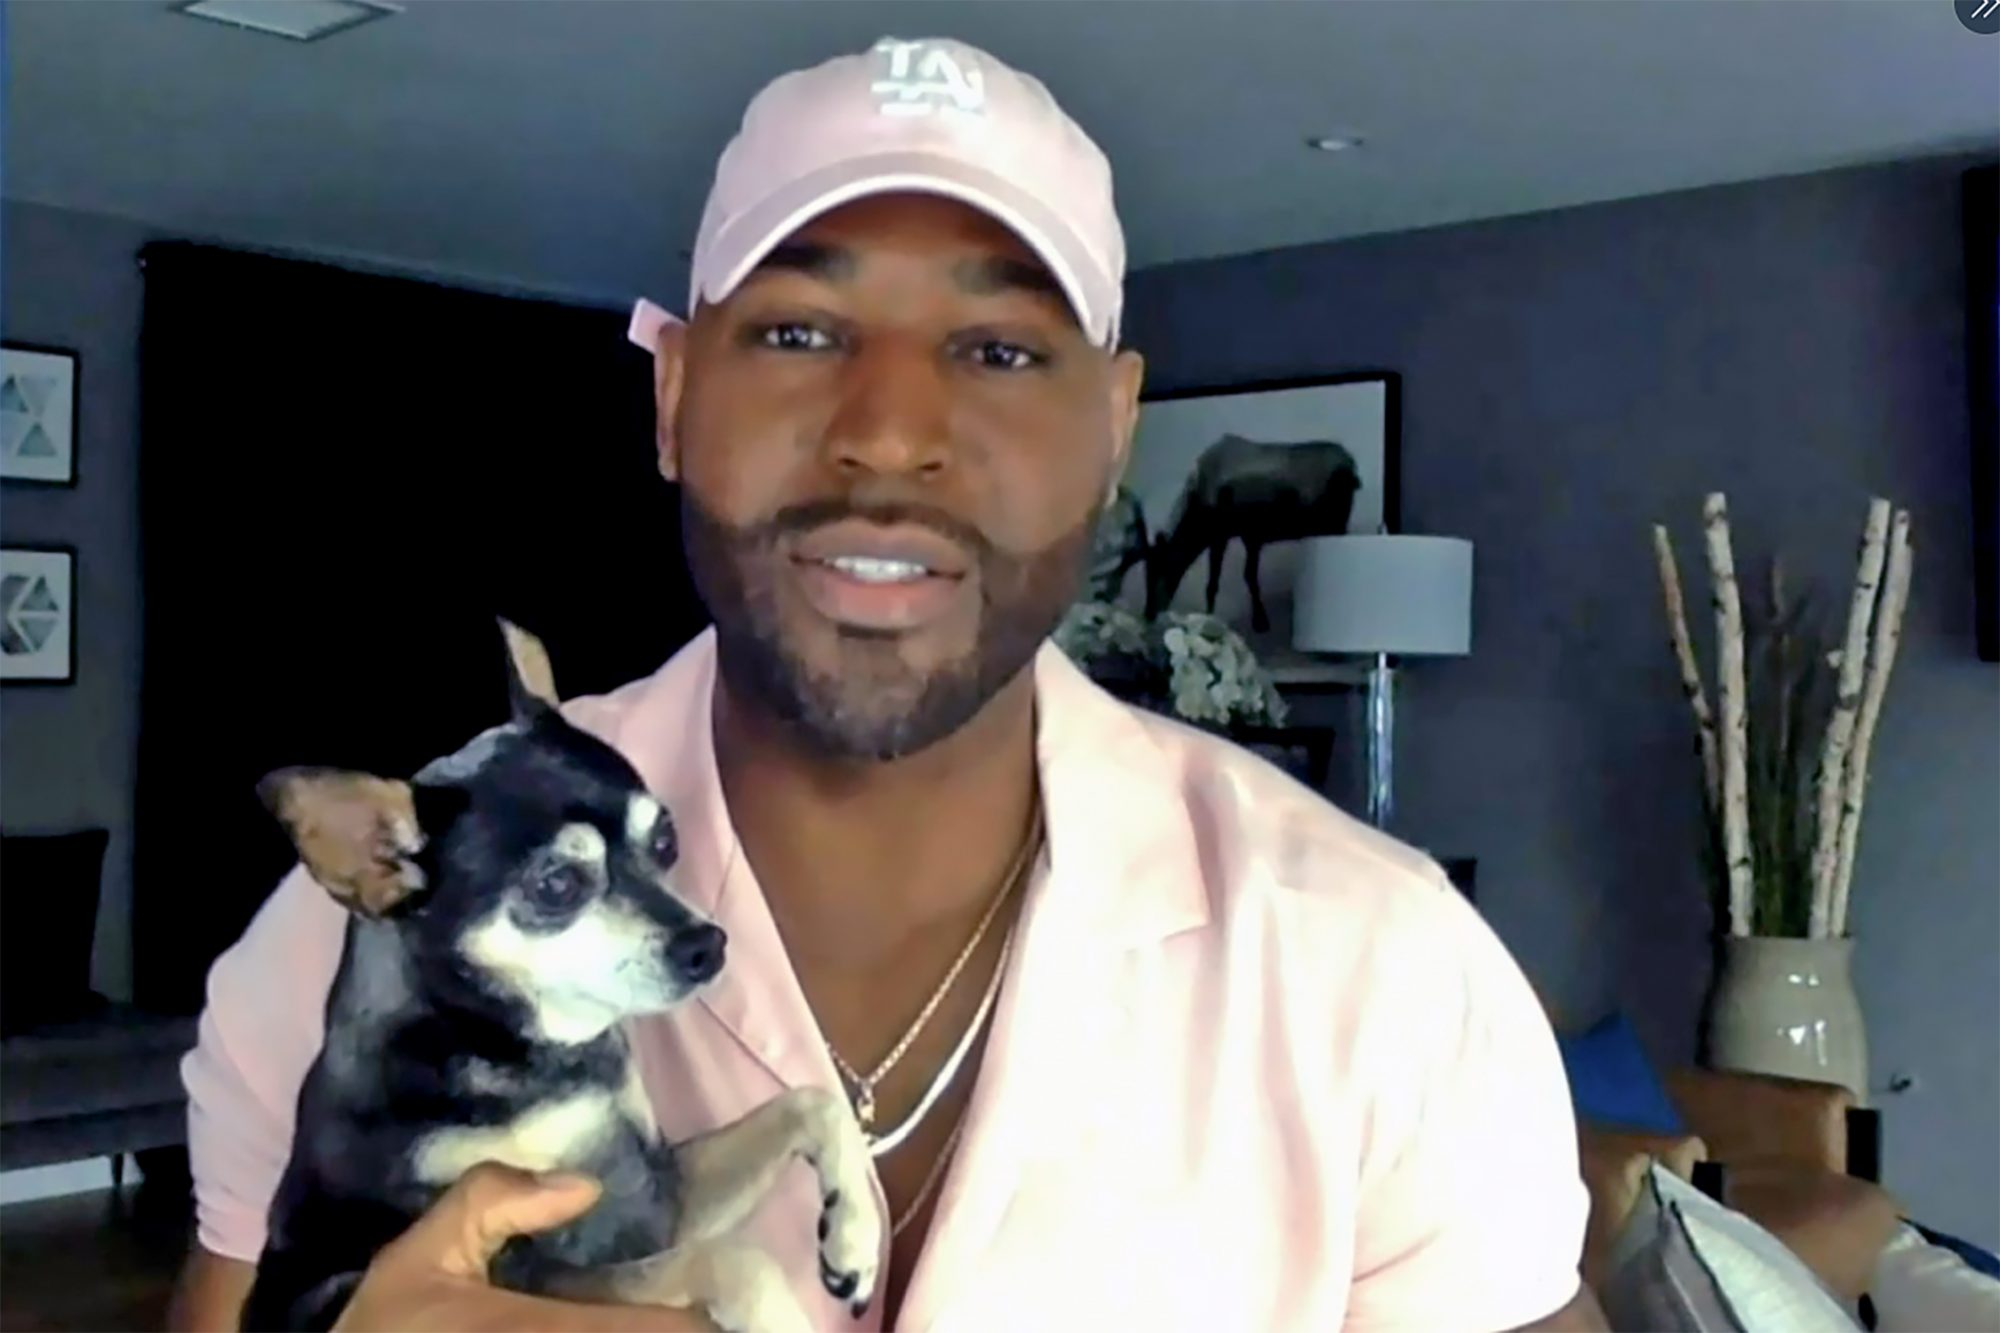 Celebrity host and lifestyle coach Karamo Brown holds small dog